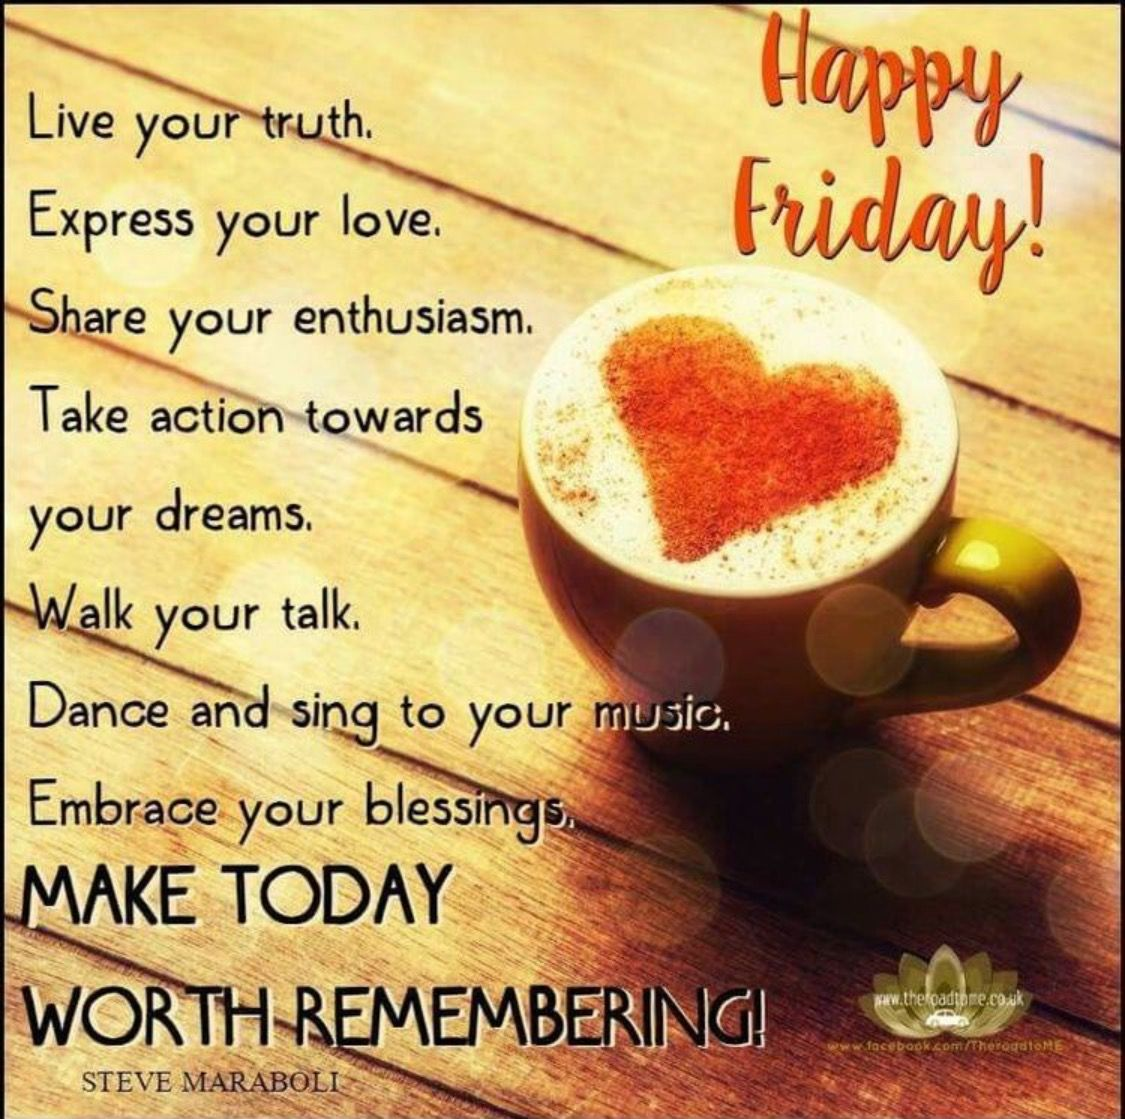 Quotes About Friday Morning: Good Morning Happy Friday